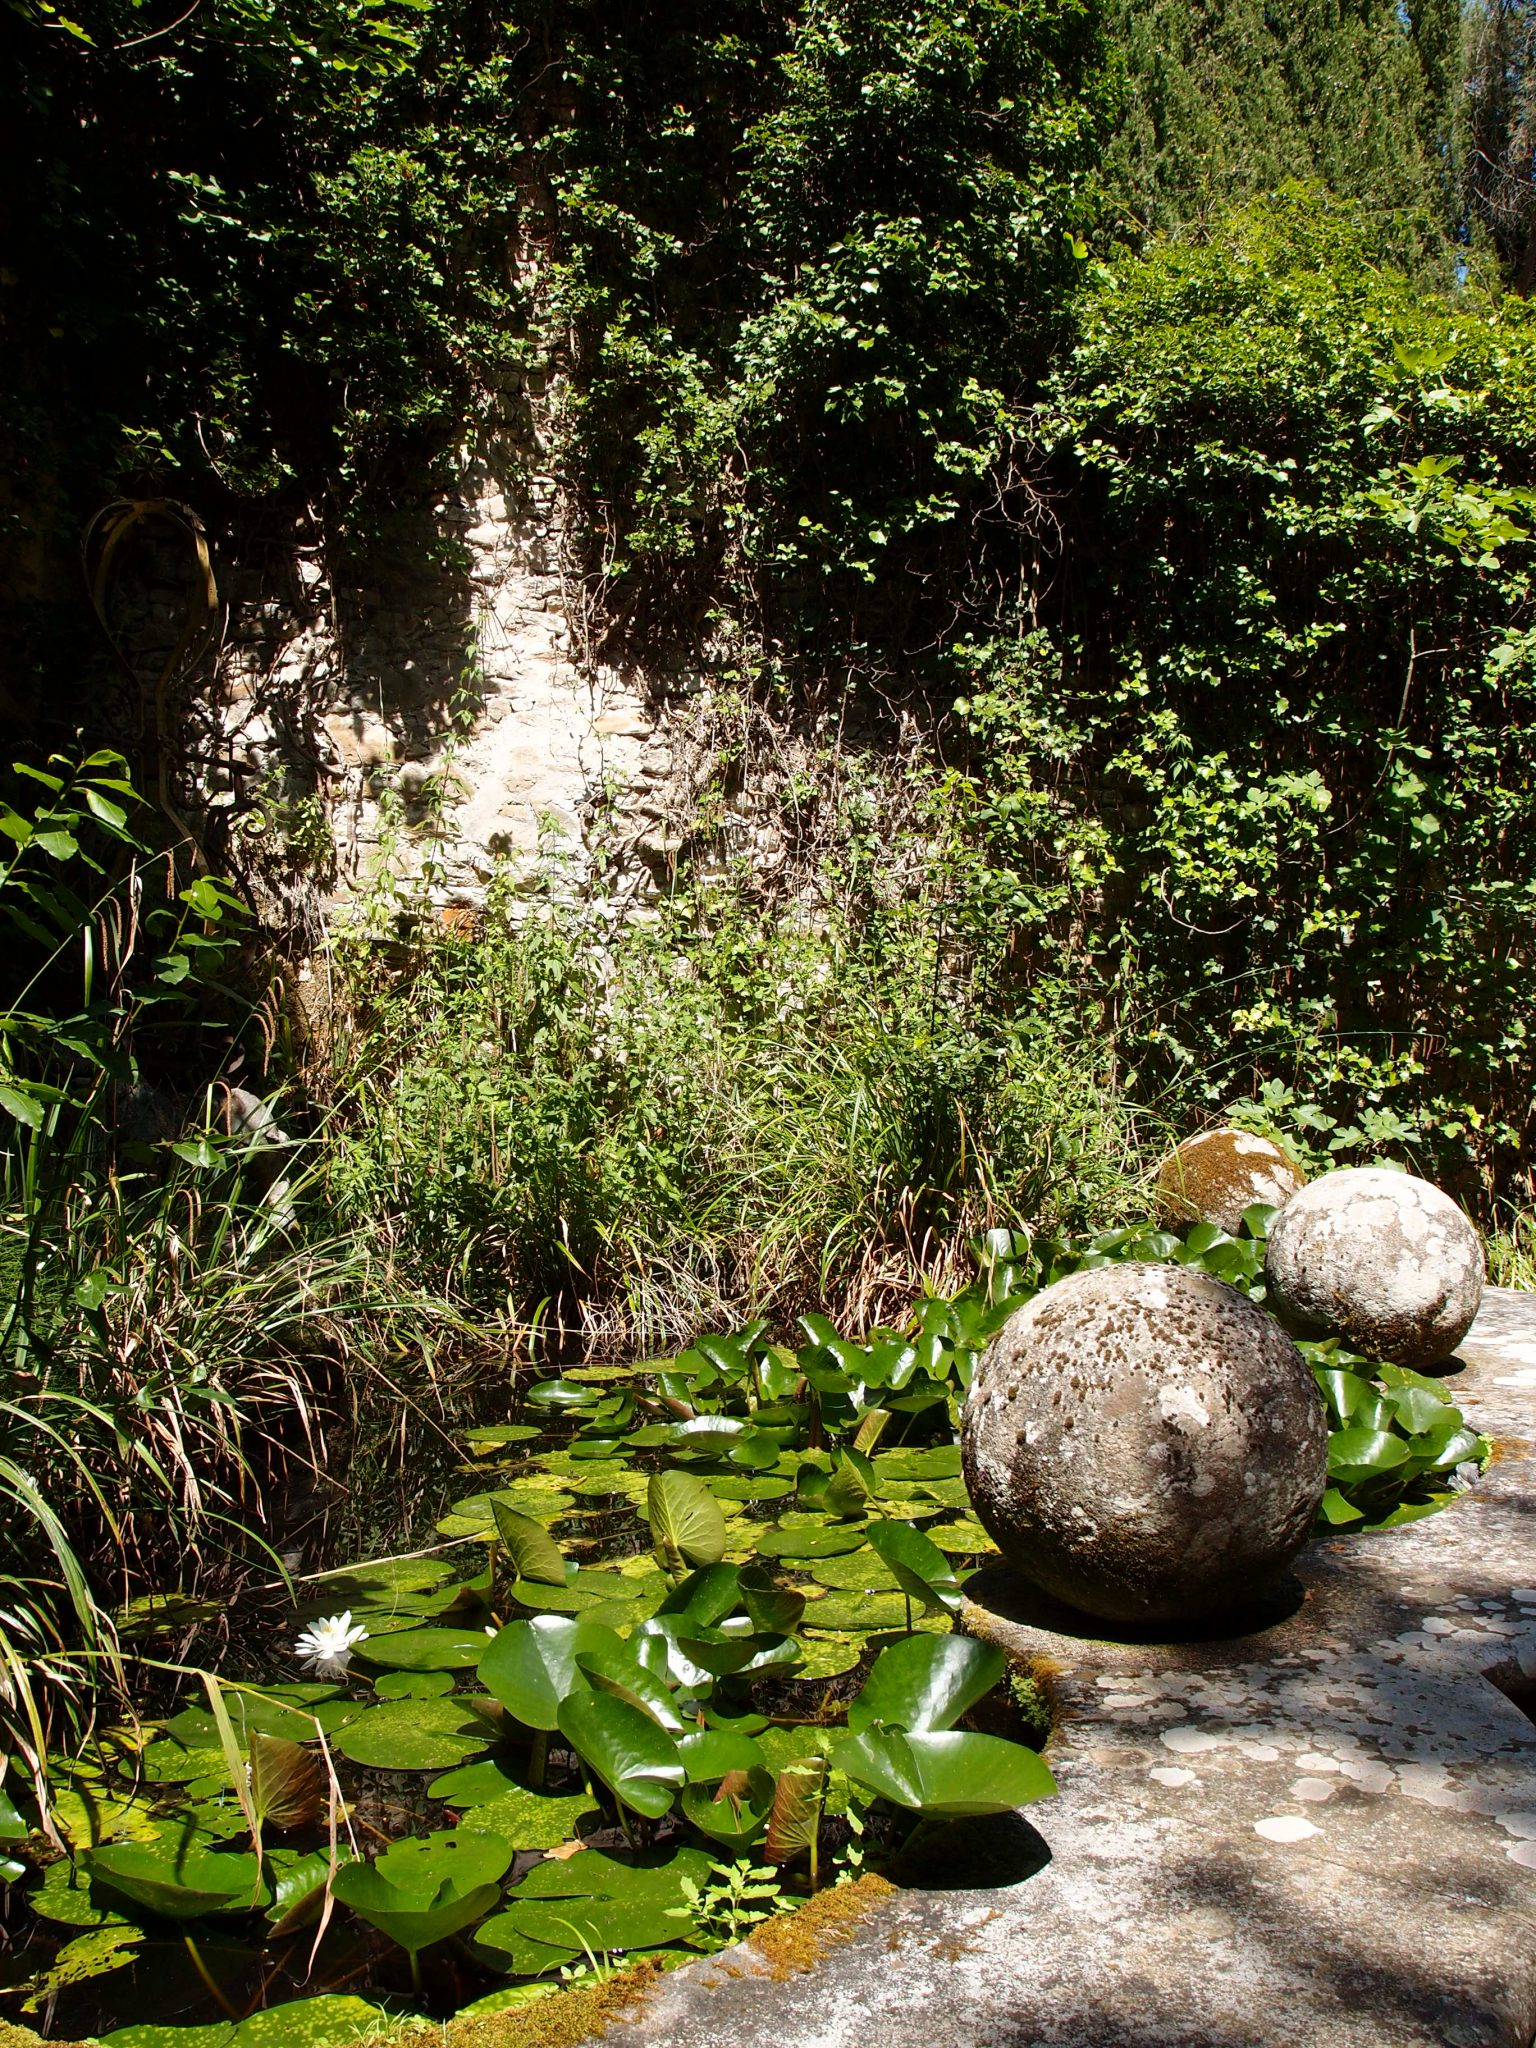 We arrive at a small Lily Pond and terrace, which are enclosed by high stone walls.